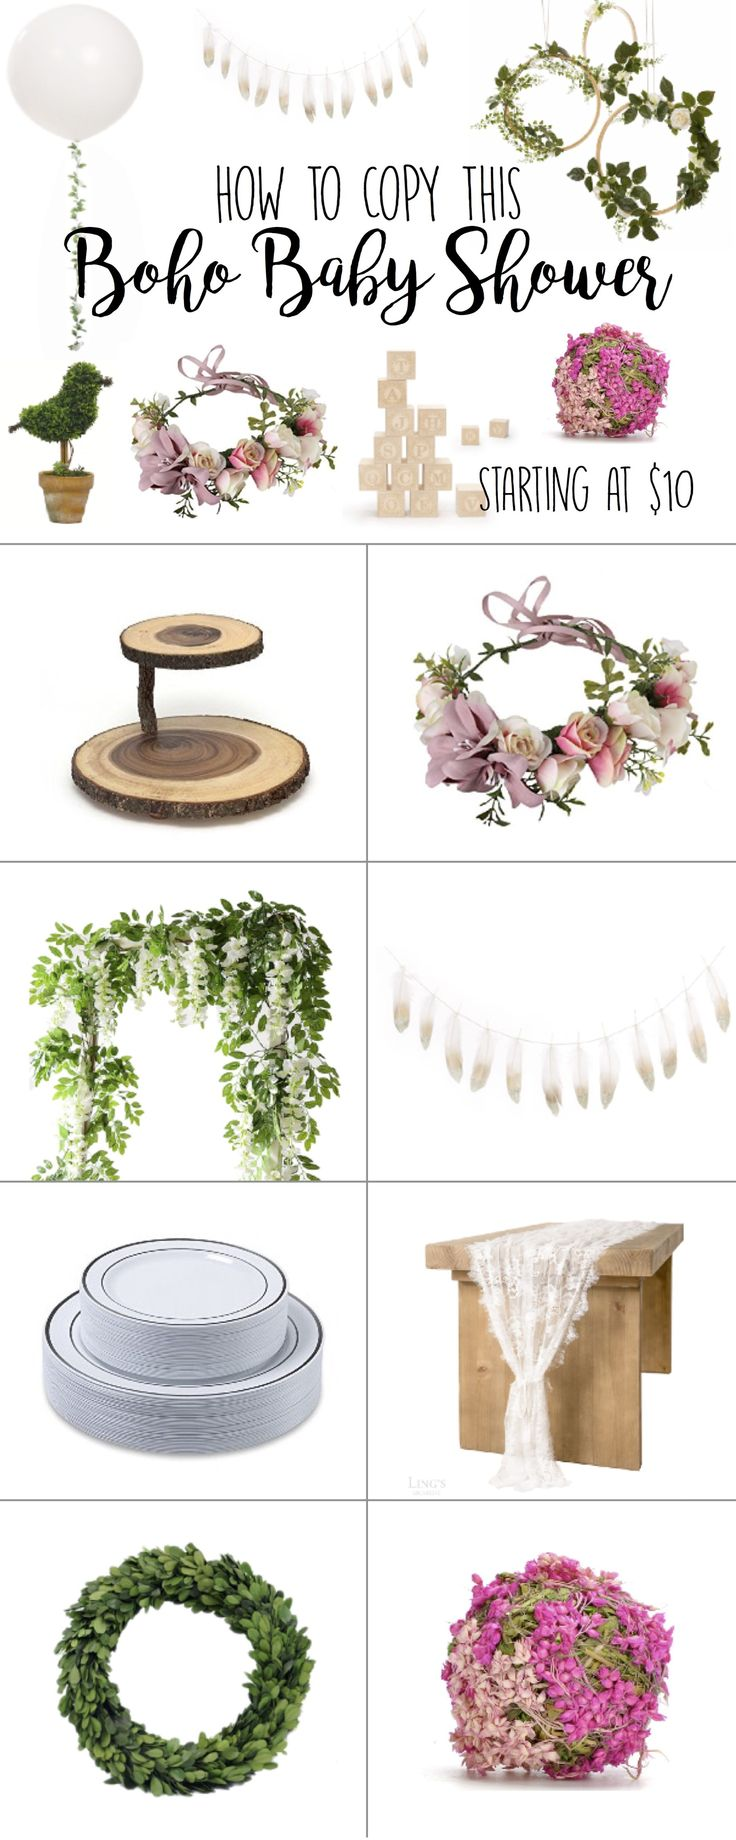 Boho Baby Shower Ideas, Girl, Boy, Bohemian, DIY, Theme, Decoration, Center Pieces, greenery, baby shower, shabby chic, dessert tables, dream catchers, Modern Florals, floral, rustic, modern, elegant, food, woodsy, outdoor, gender neutral baby shower ideas, pink fall, mom, feathers, classic, classy, elegant, pretty baby shower, classy shower for baby girl boy #boho #bohobabyshower #babyshowerideas #babyshower #bohemianshower